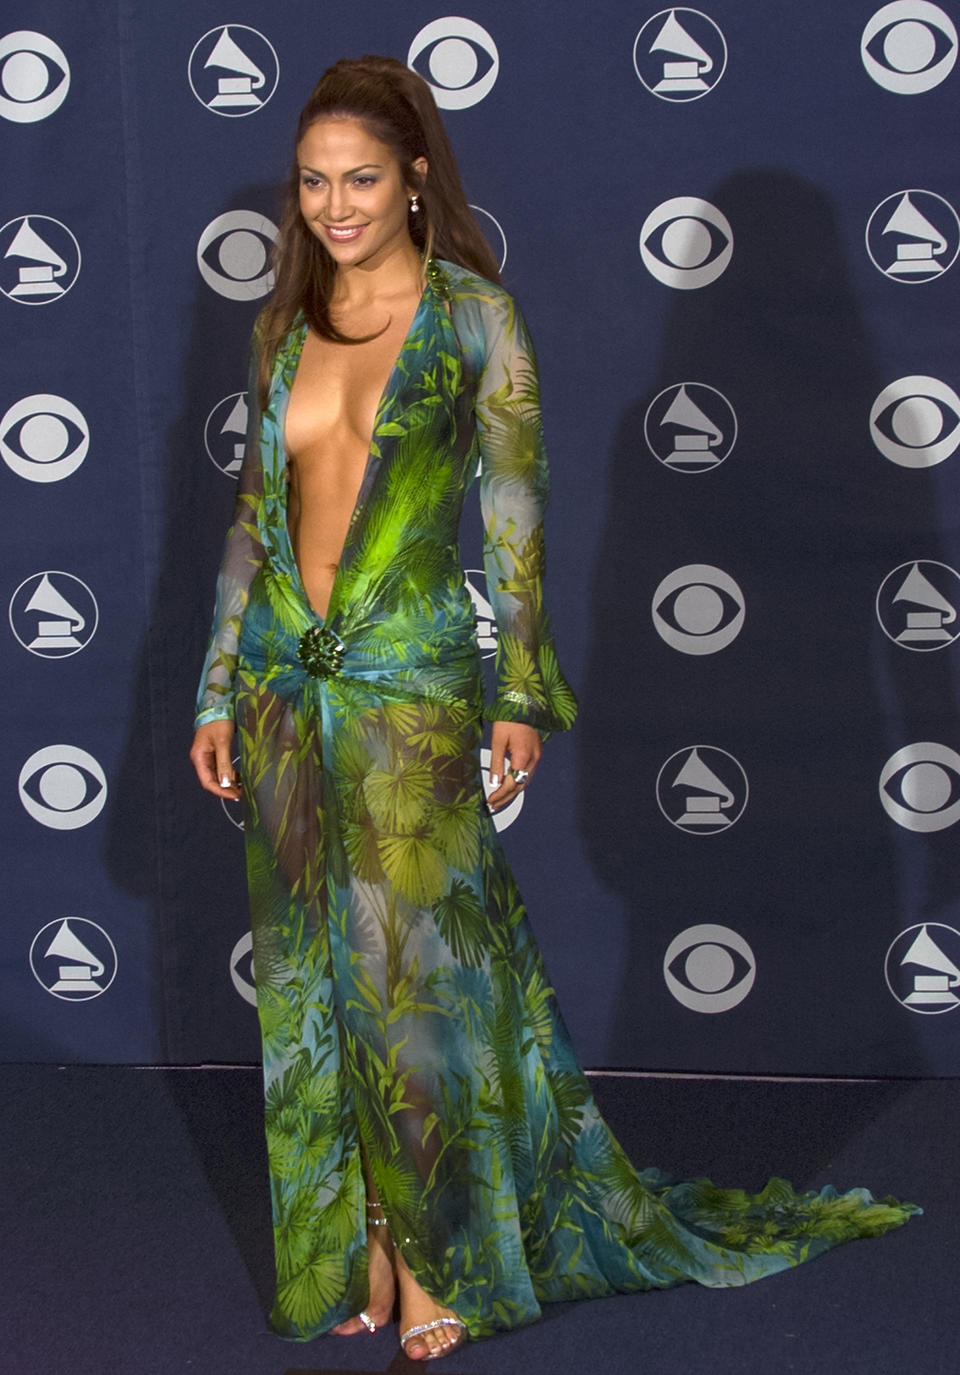 Jennifer Lopez attended the Grammy Awards in 2000 wearing a Versace green dress that made history. (Photo: Bob Riha, Jr./Getty Images)